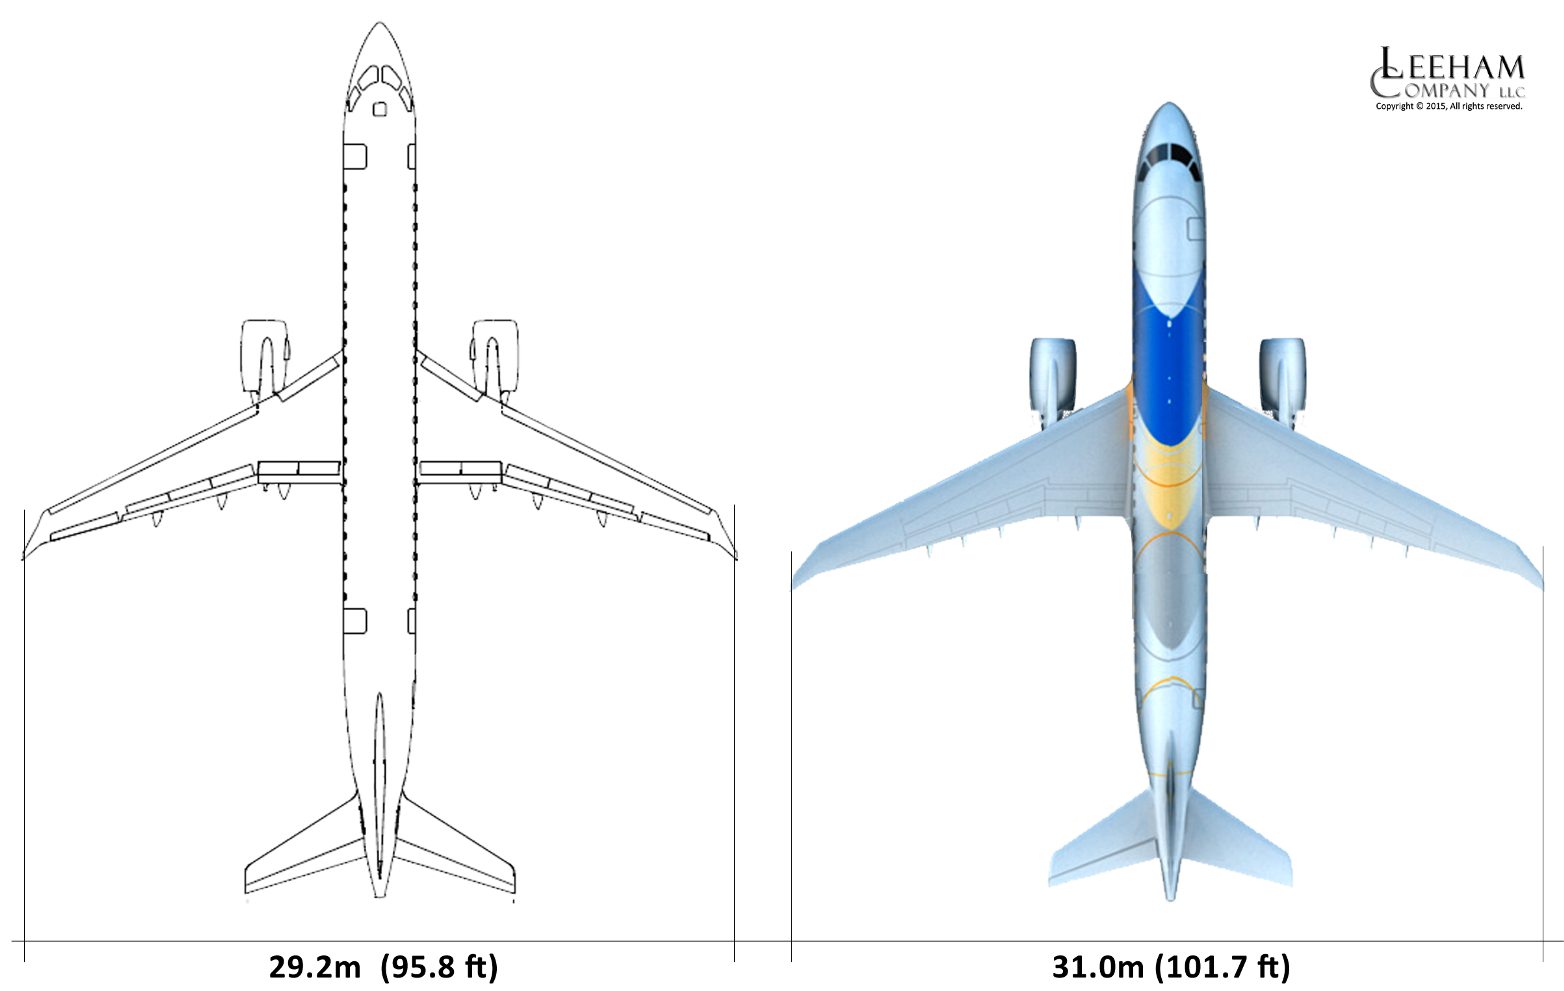 First Analysis Of Mitsubishi Regional Jet Mrj Leeham News And Here39s A Diagram Mod I Above Showing All The Connections